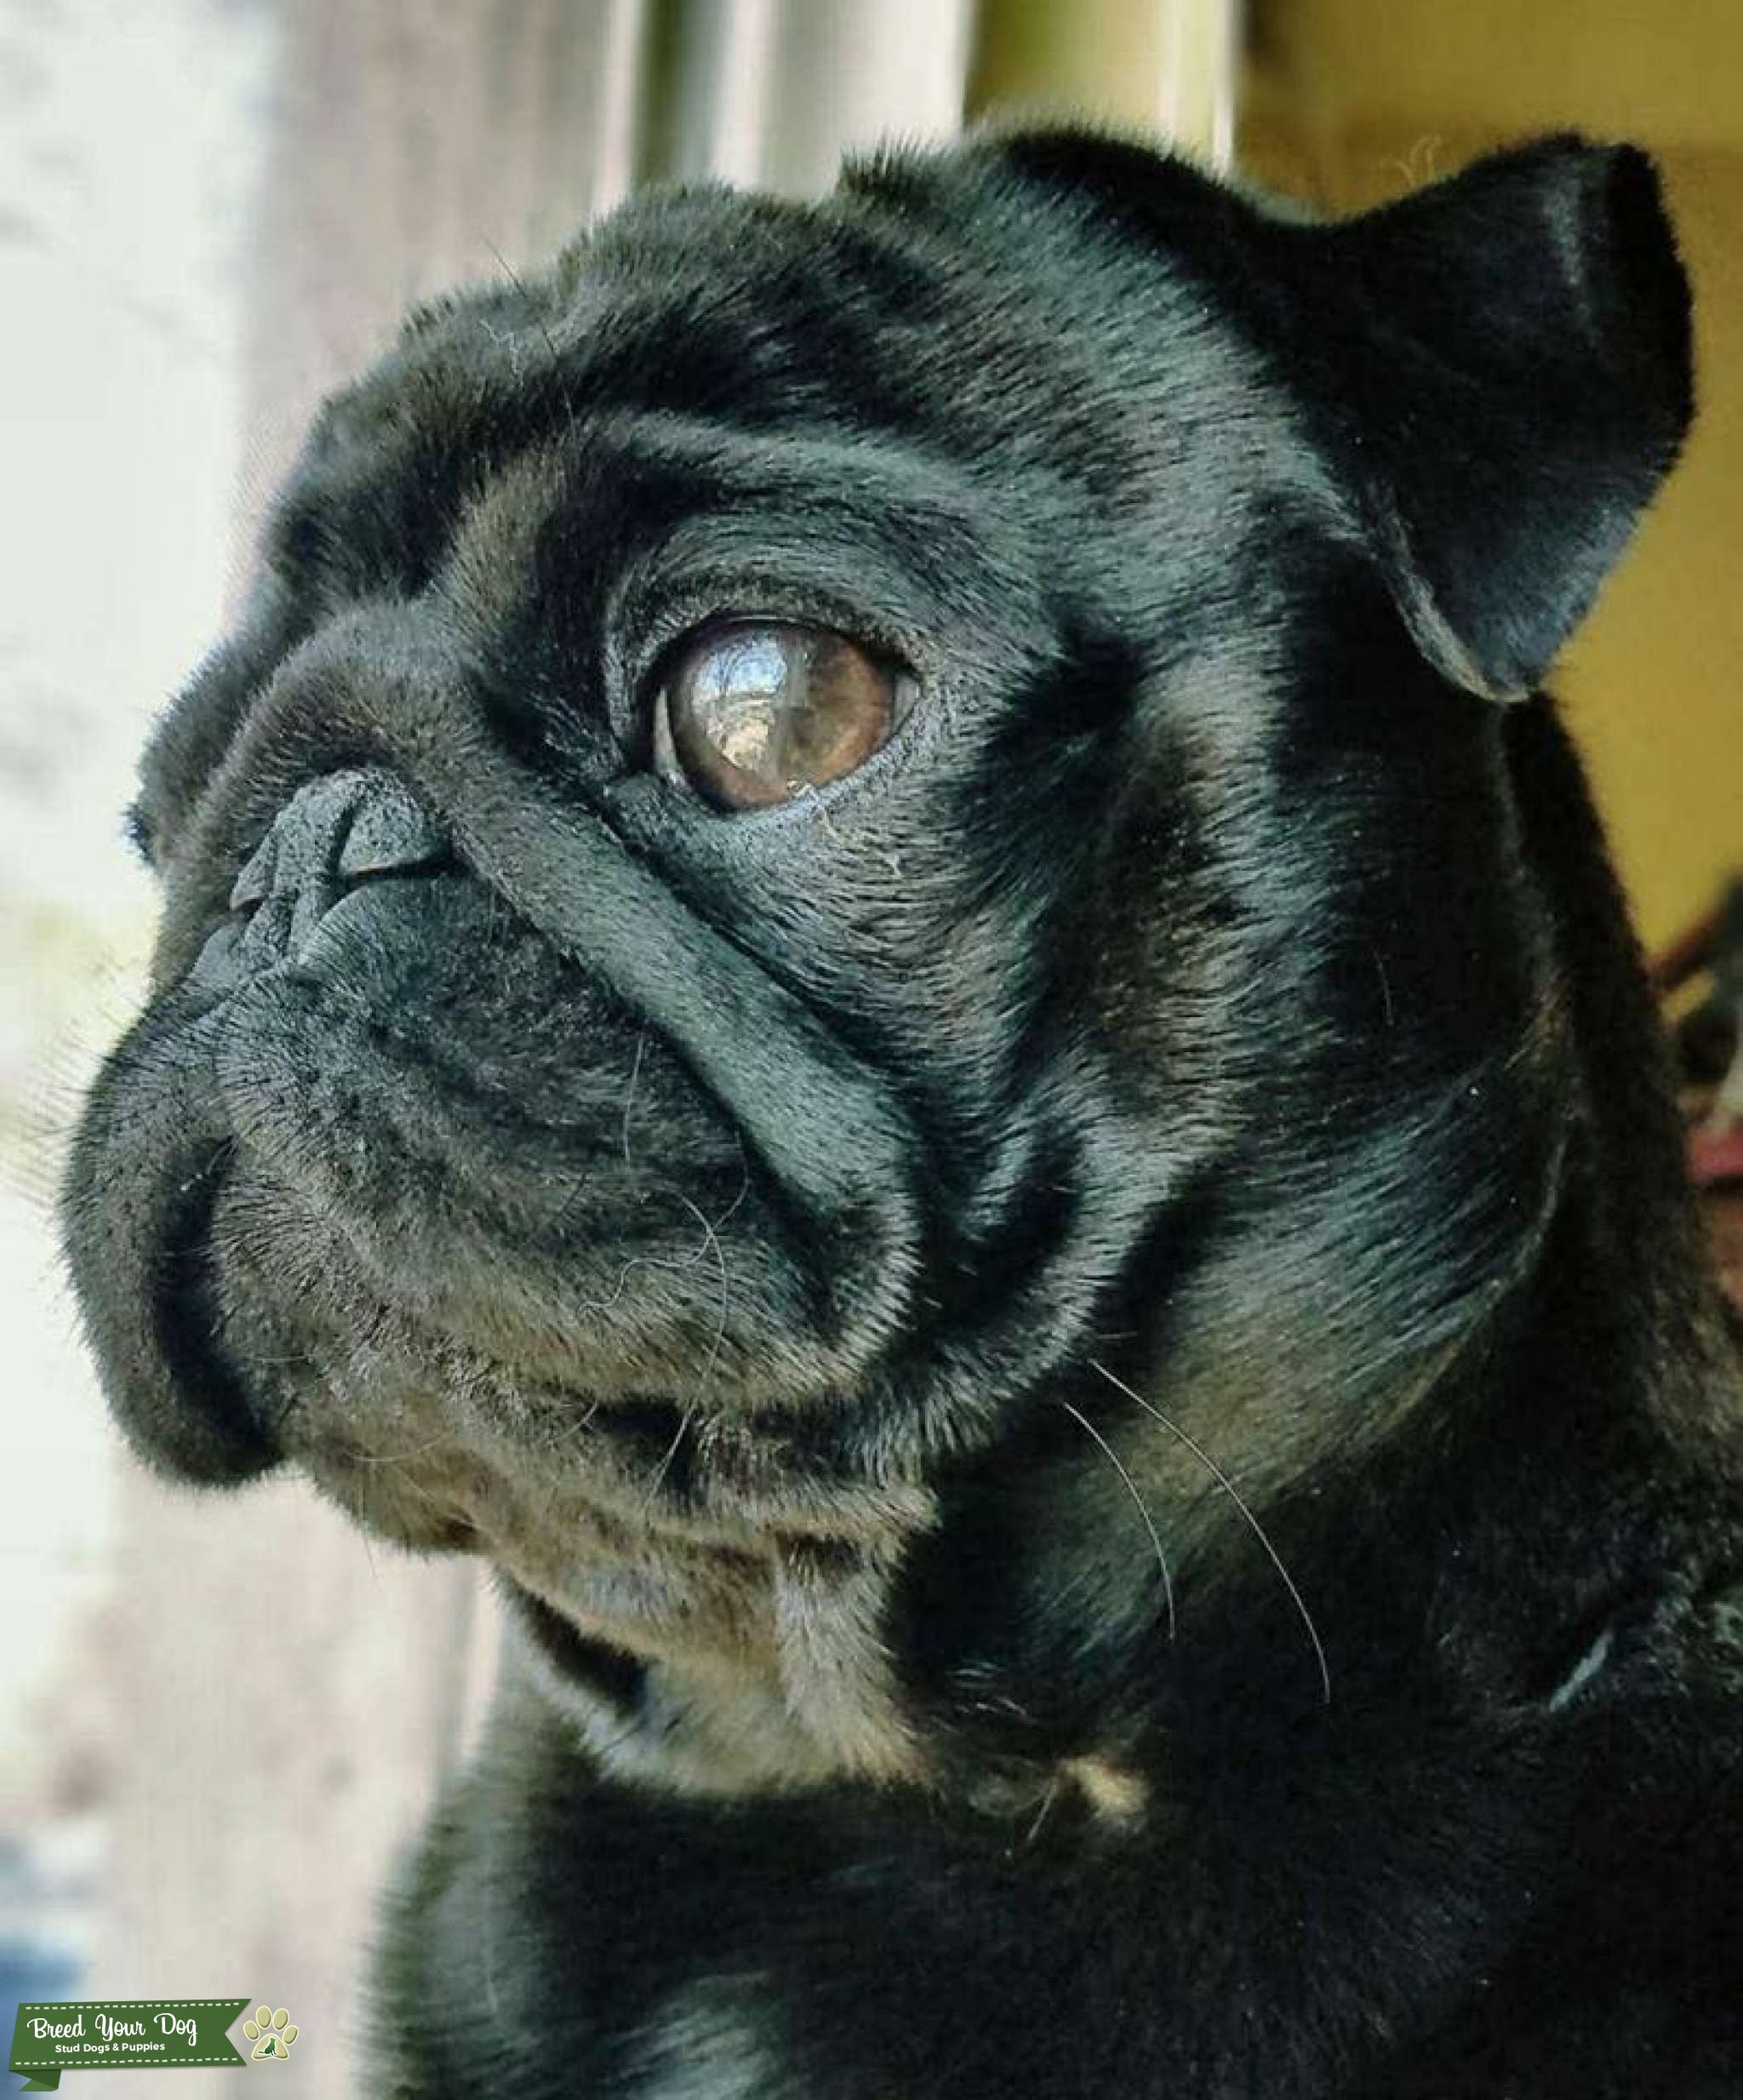 AKC Registered Stud Black Pug with thick, shiny fur Listing Image Big